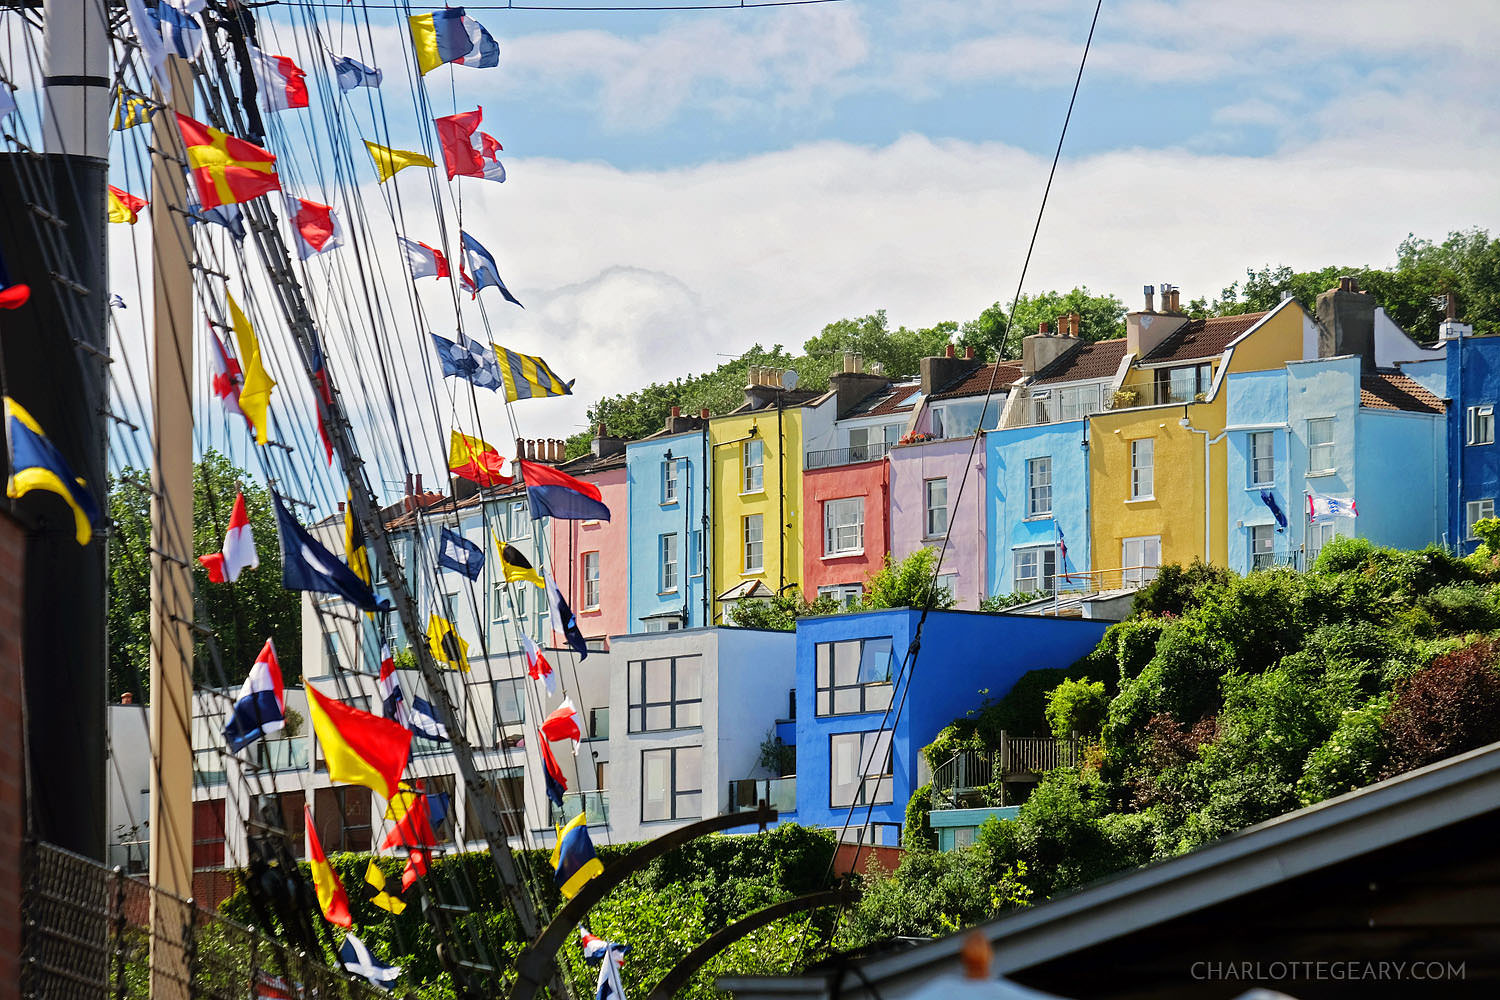 Colorful houses in Bristol